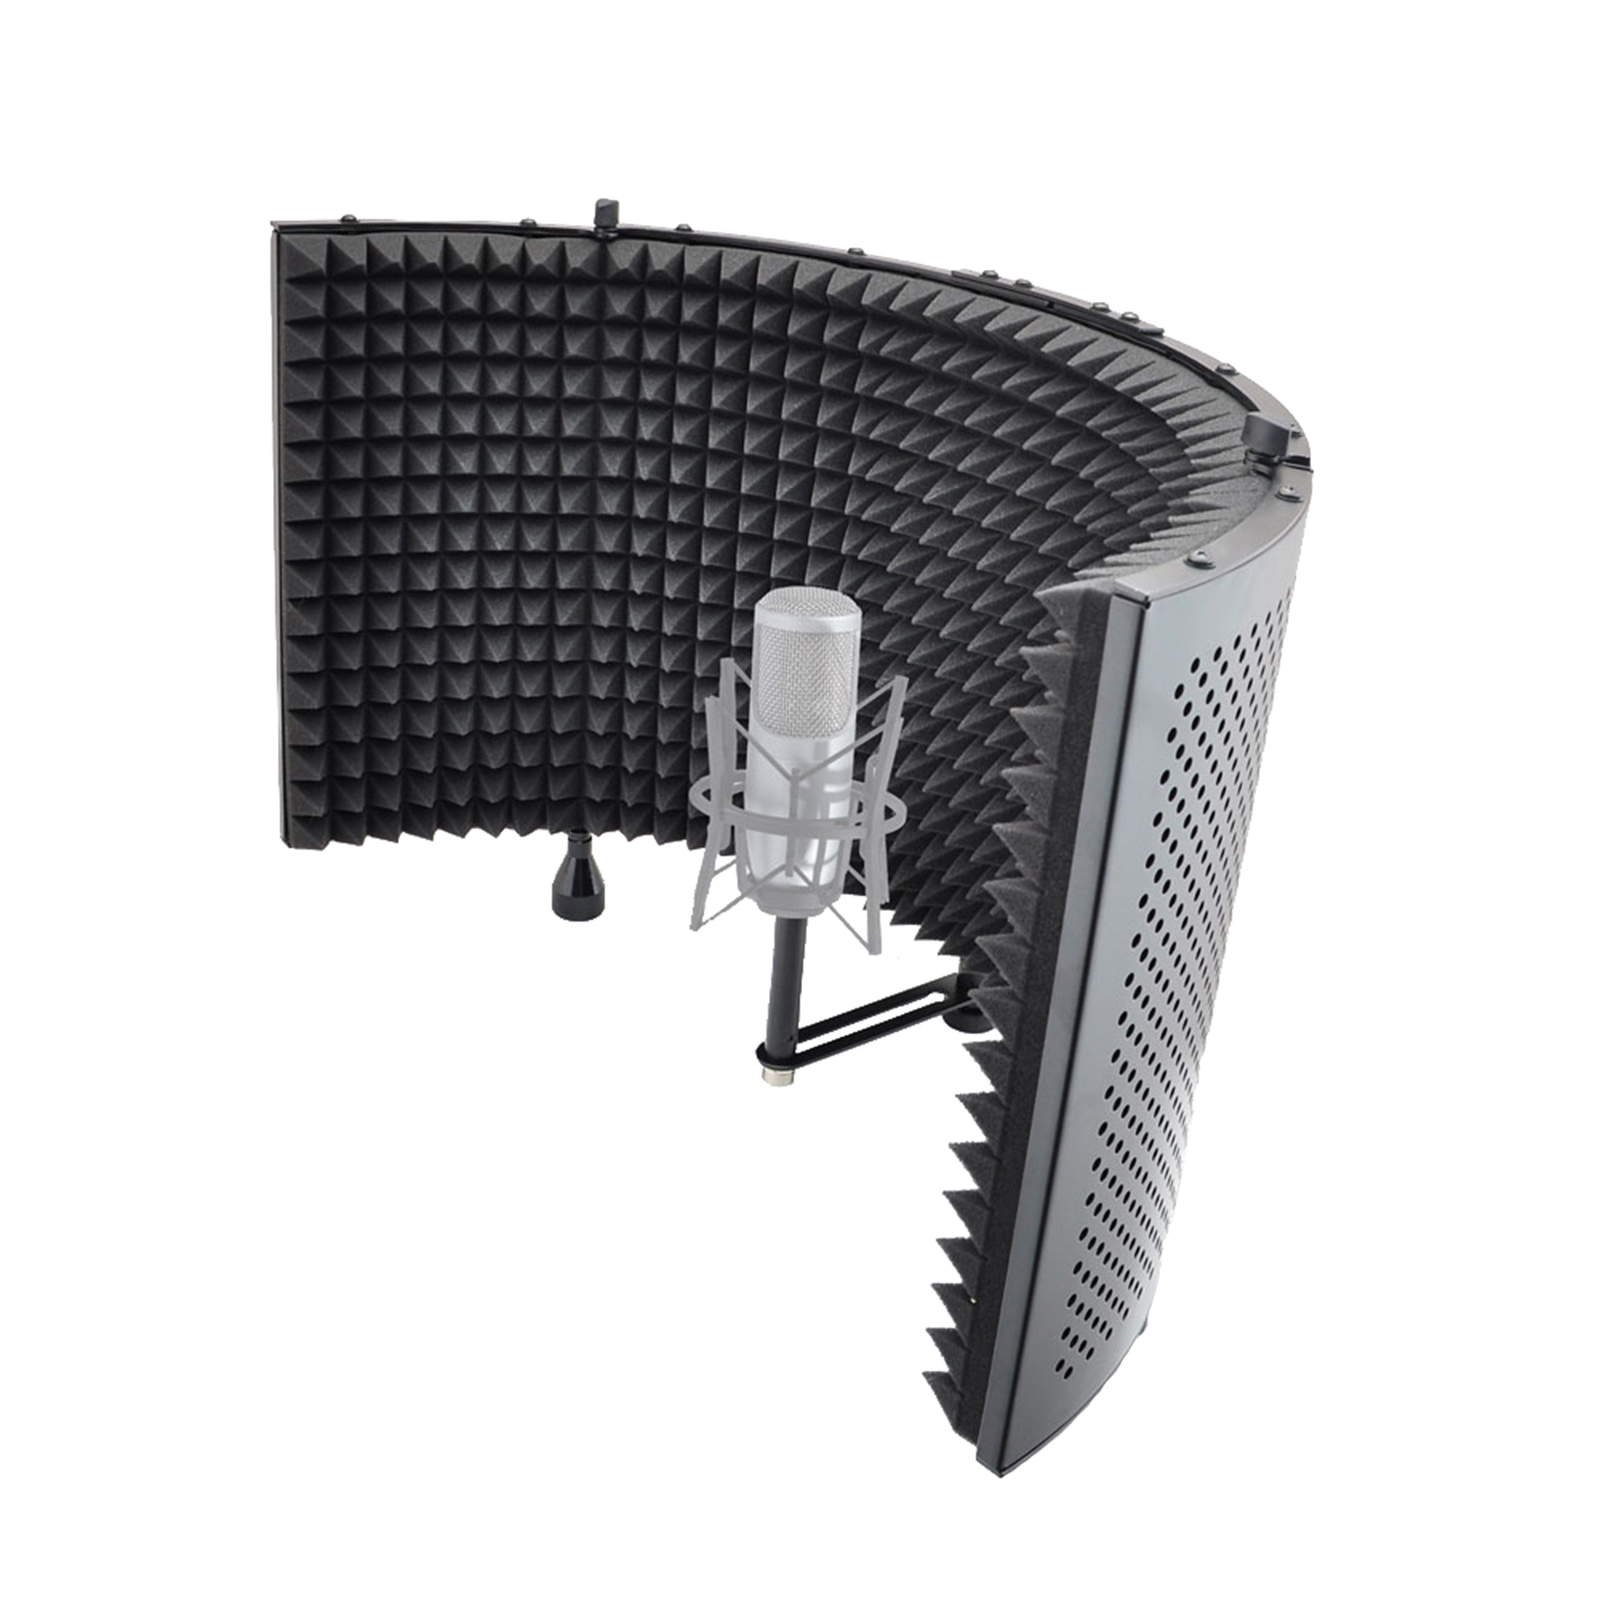 Microphone Isolation Shield with Sound Dampening Foam